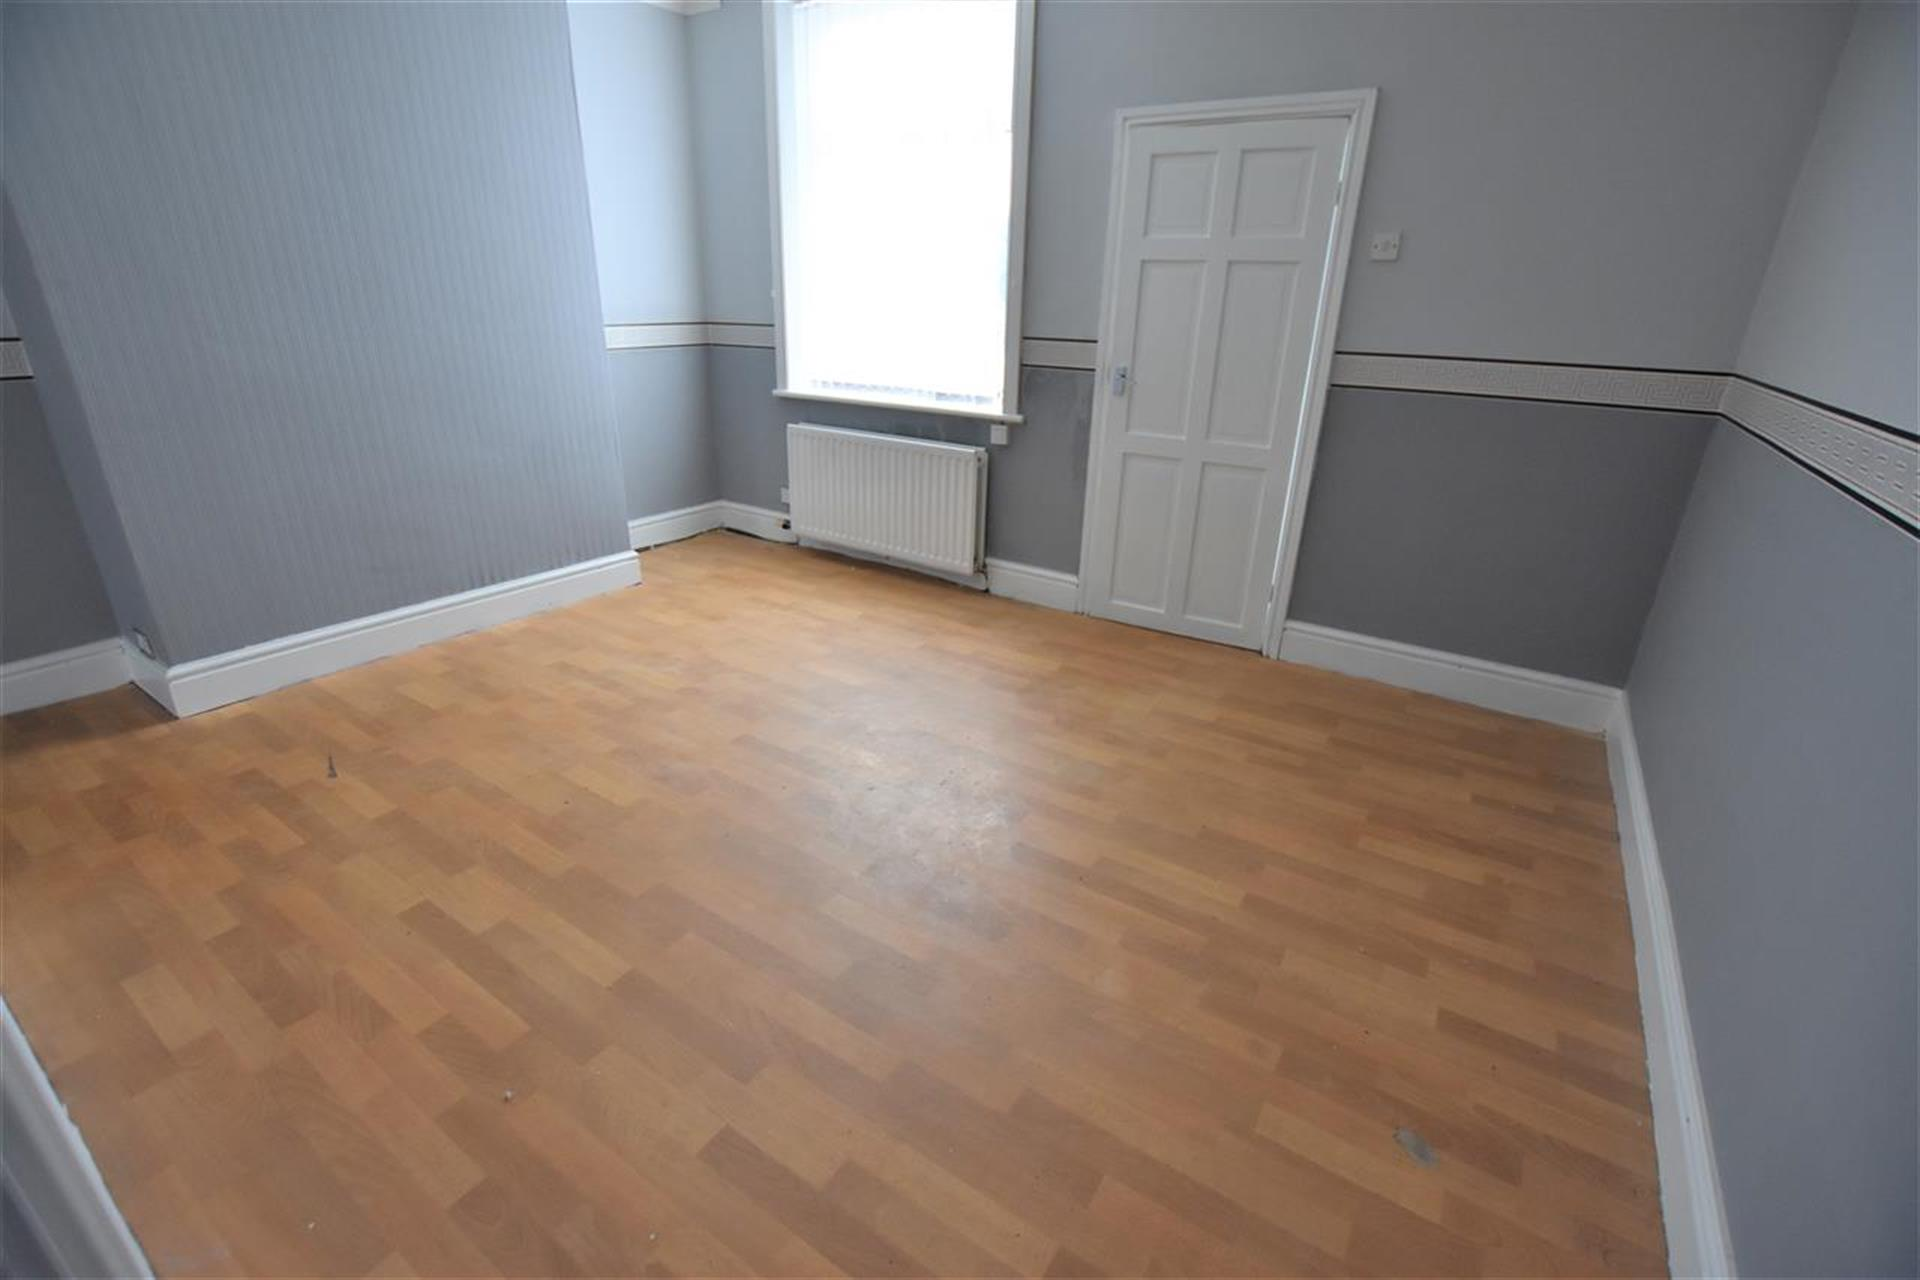 2 Bedroom Terraced House To Rent - Reception Room Two